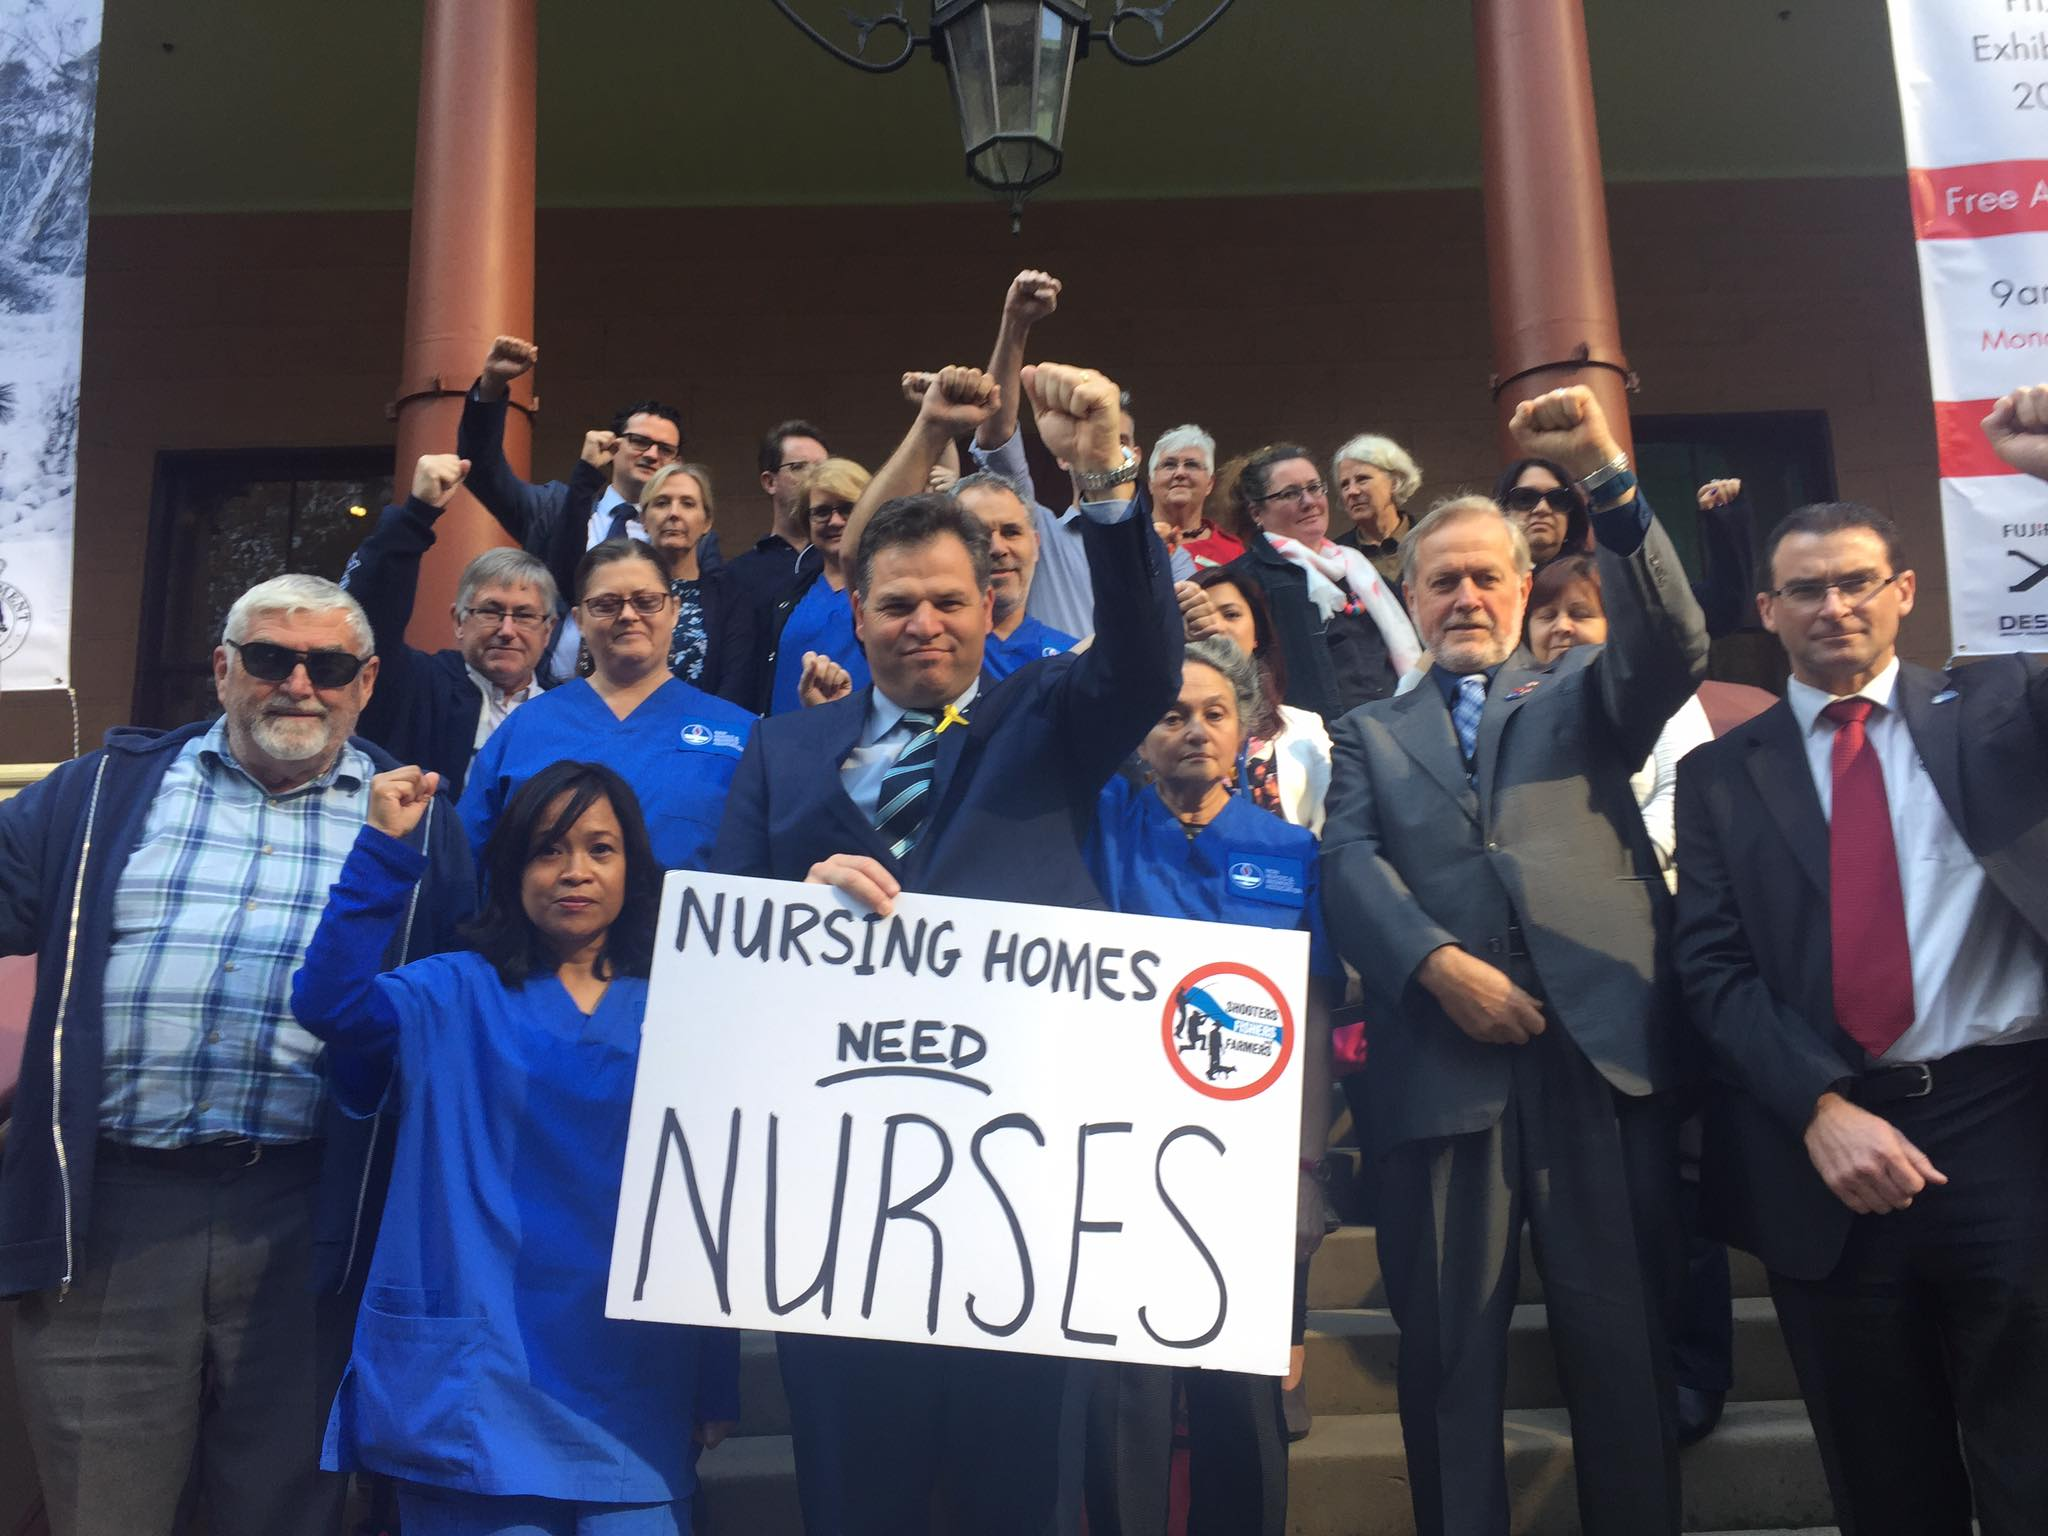 Keep nurses in nursing homes